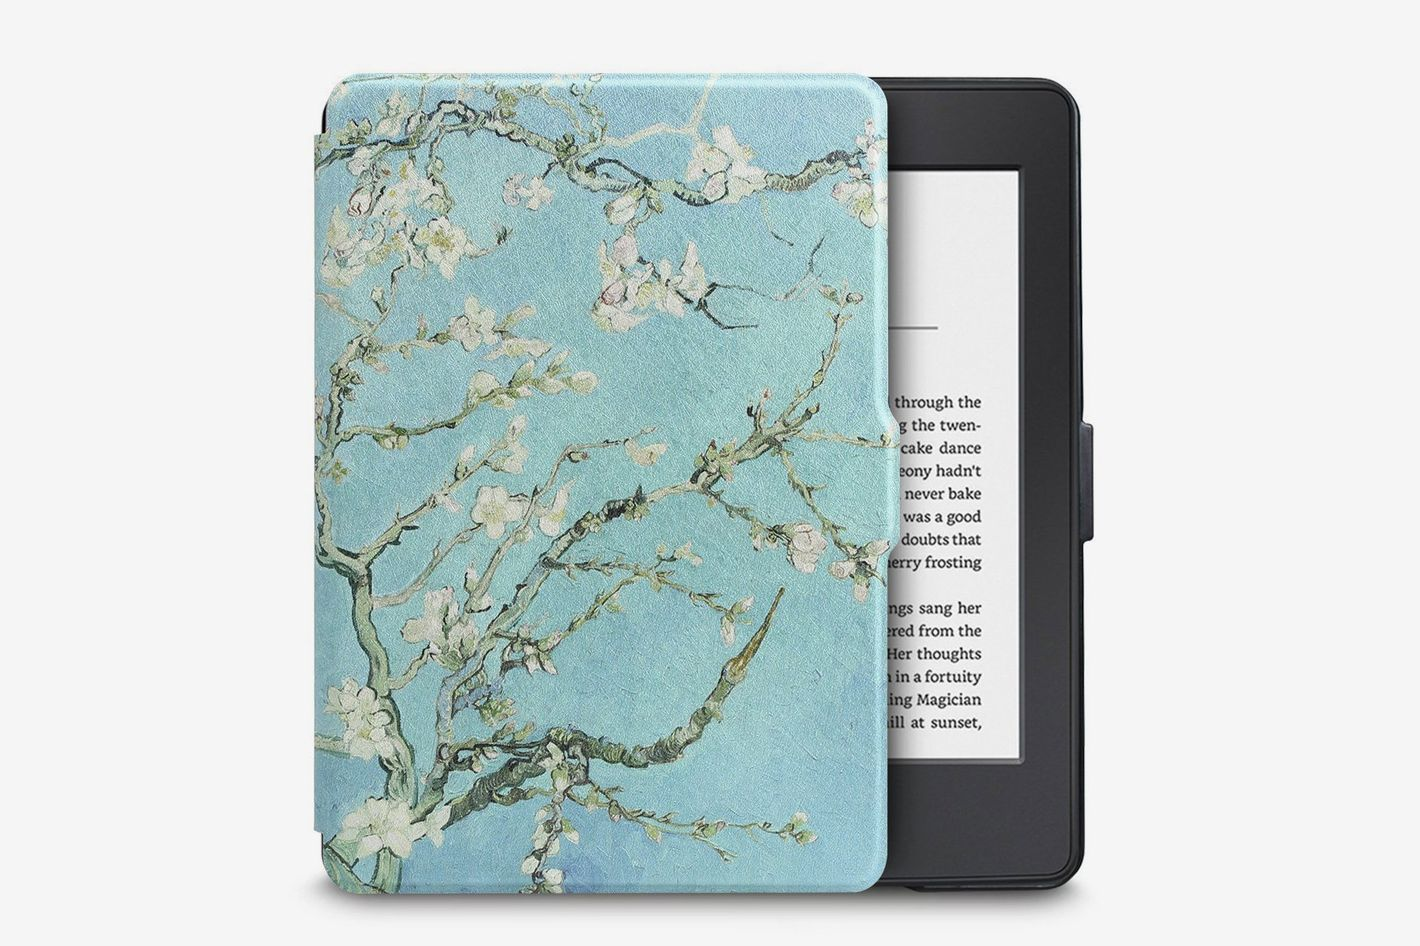 WALNEW Kindle Paperwhite Cover